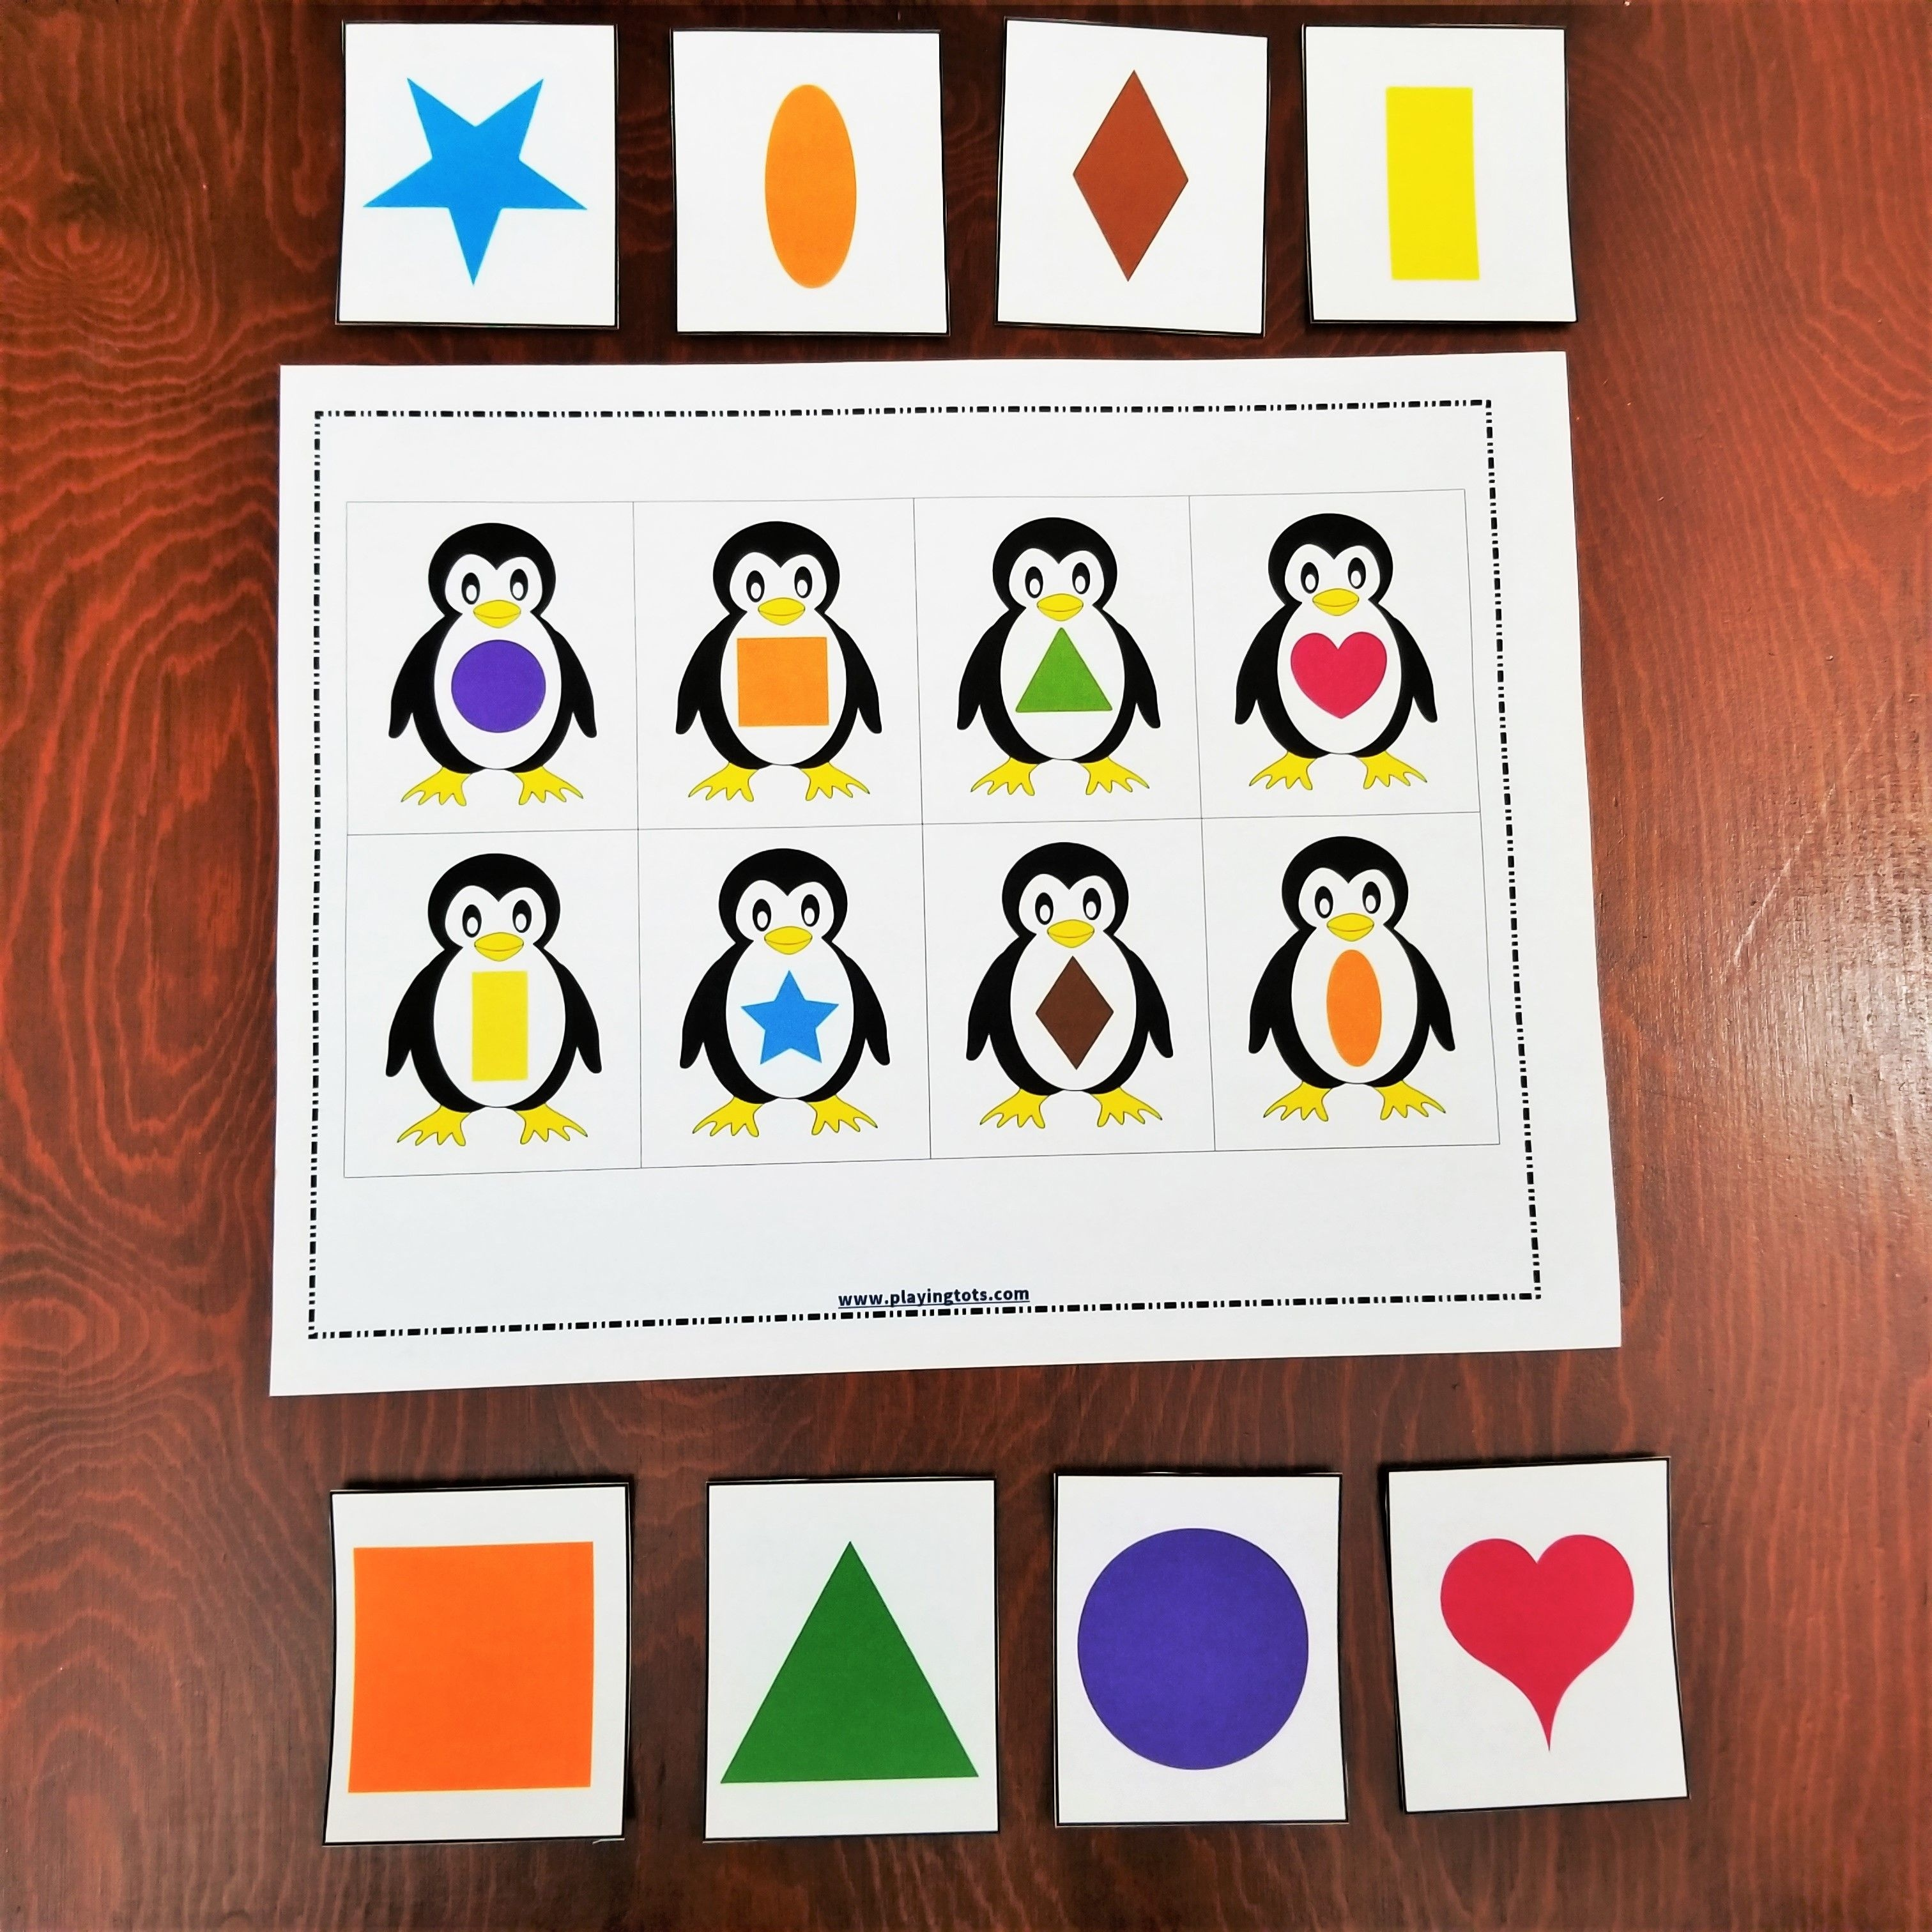 Keywords: Matching,activities,shapes,penguin,animals,toddler,free - Free Printable File Folder Games For Preschool